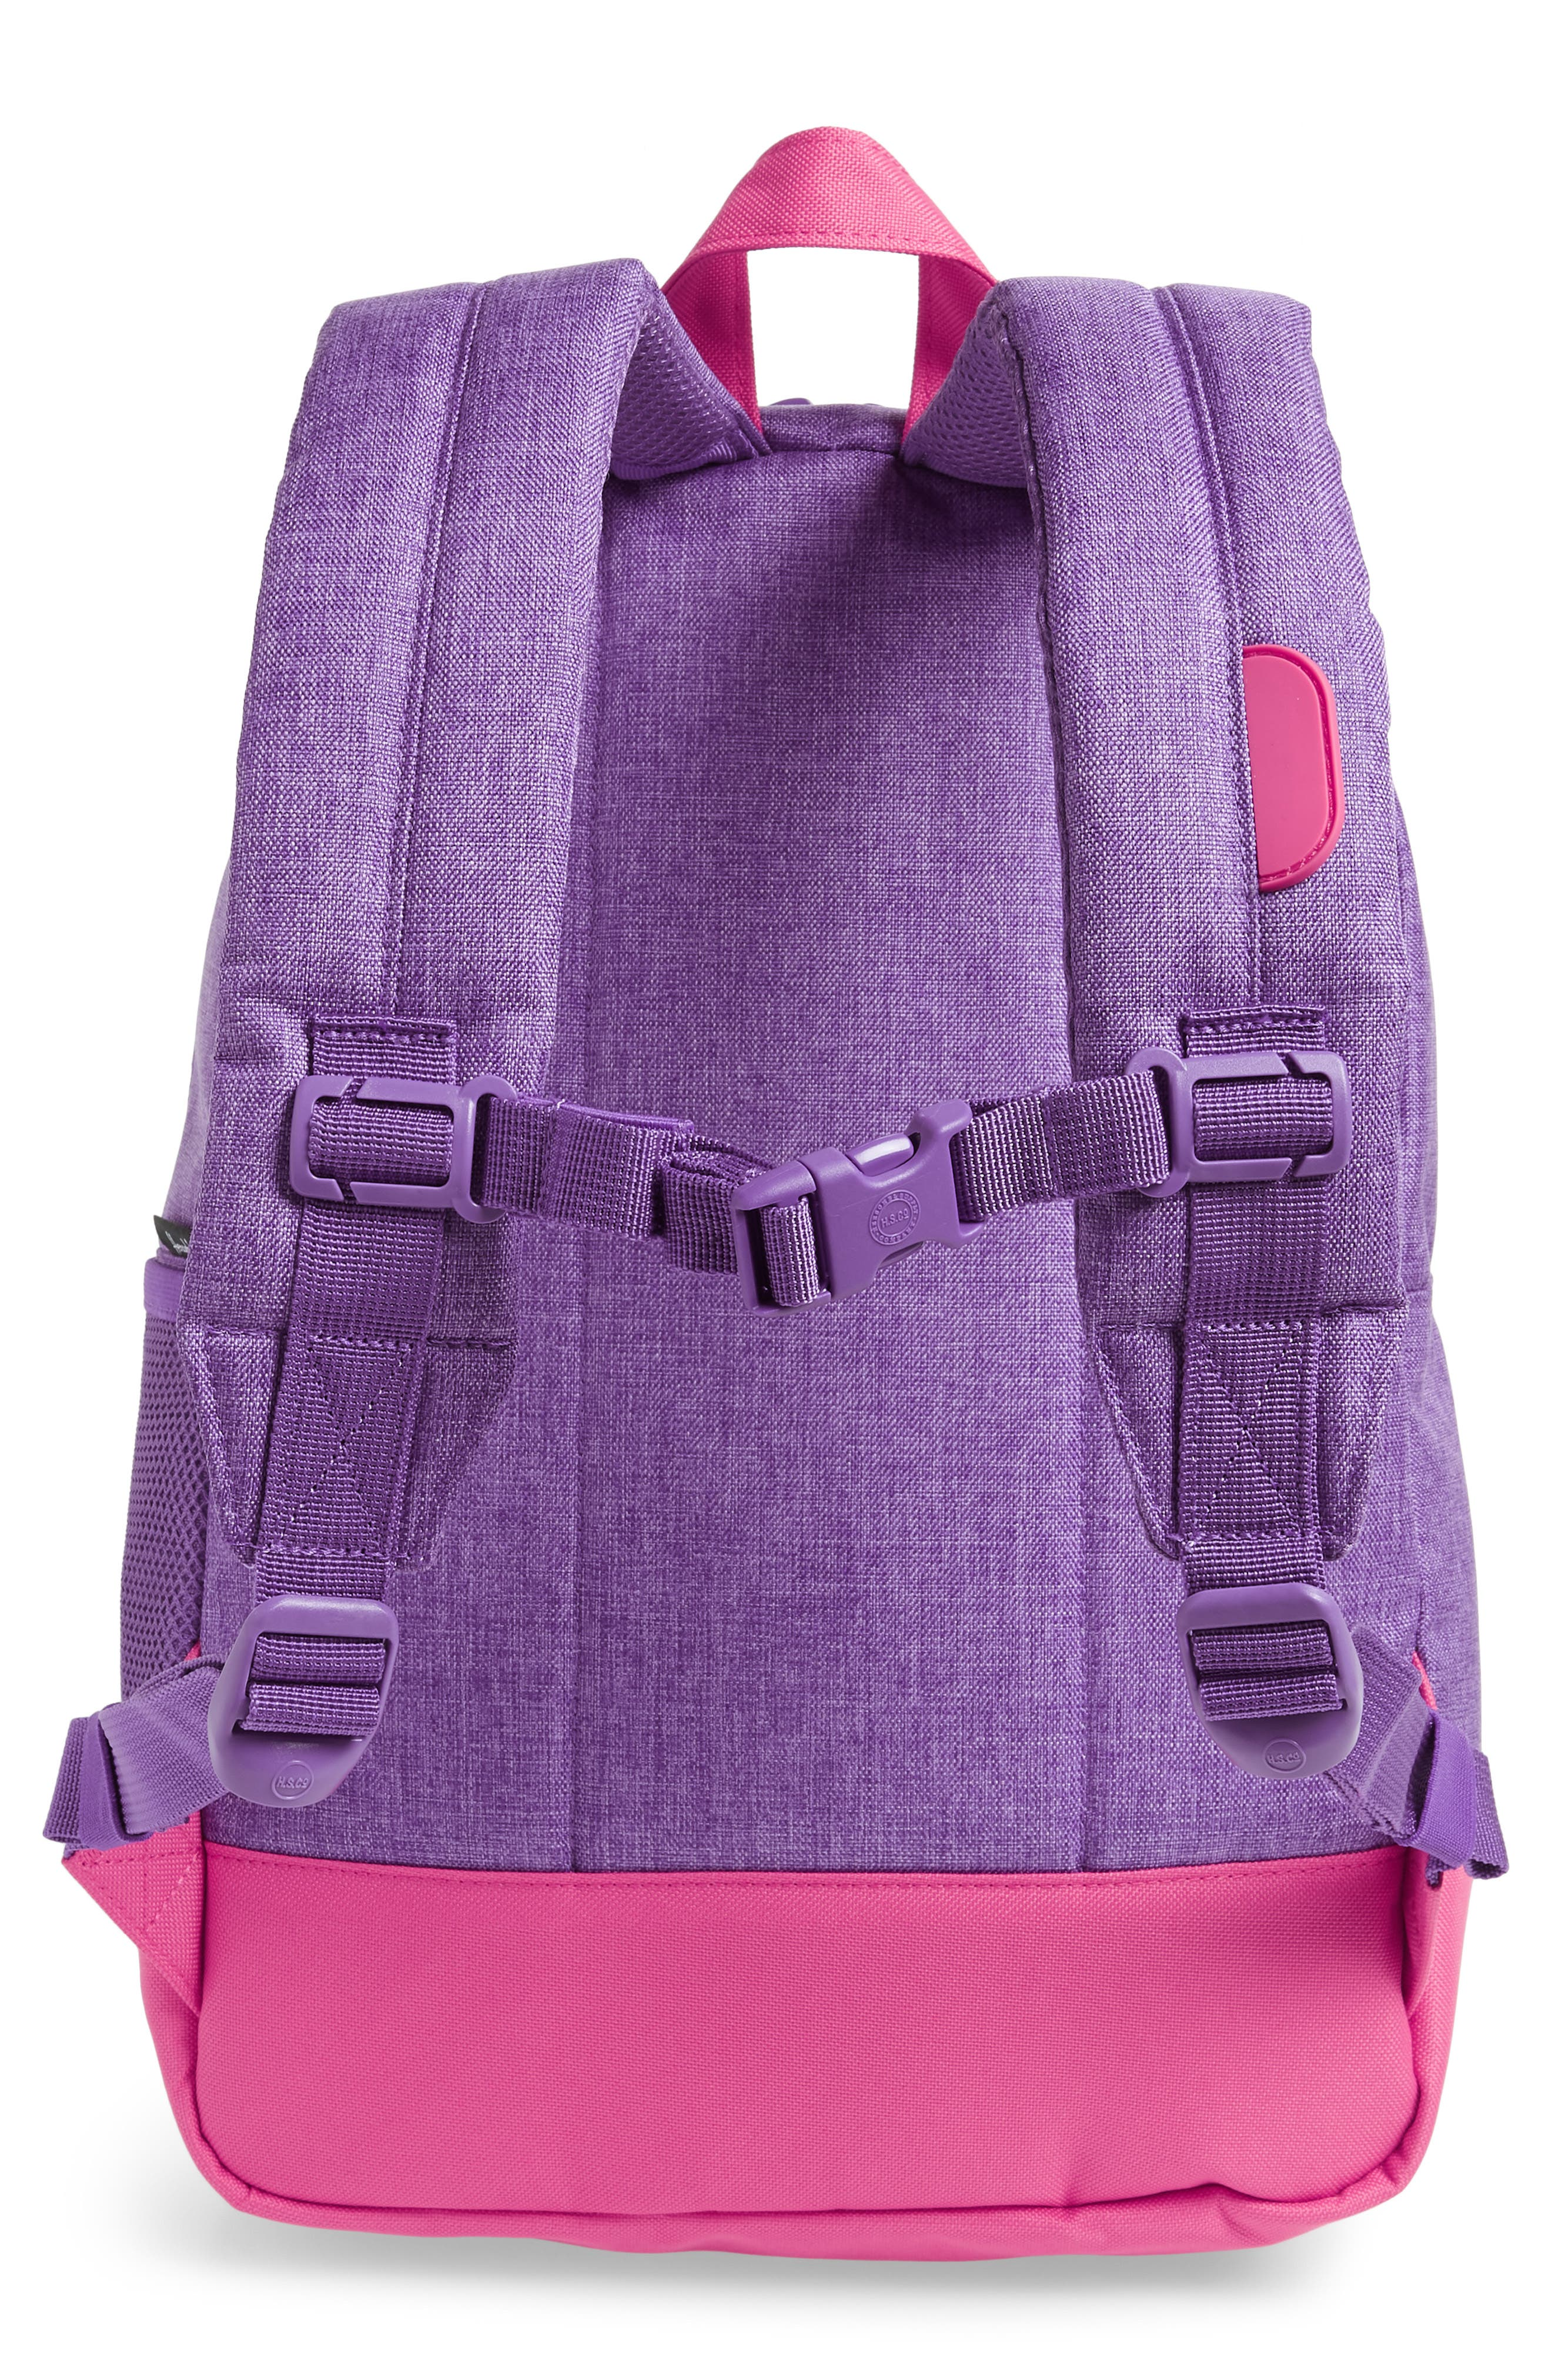 Heritage Backpack,                             Alternate thumbnail 2, color,                             515